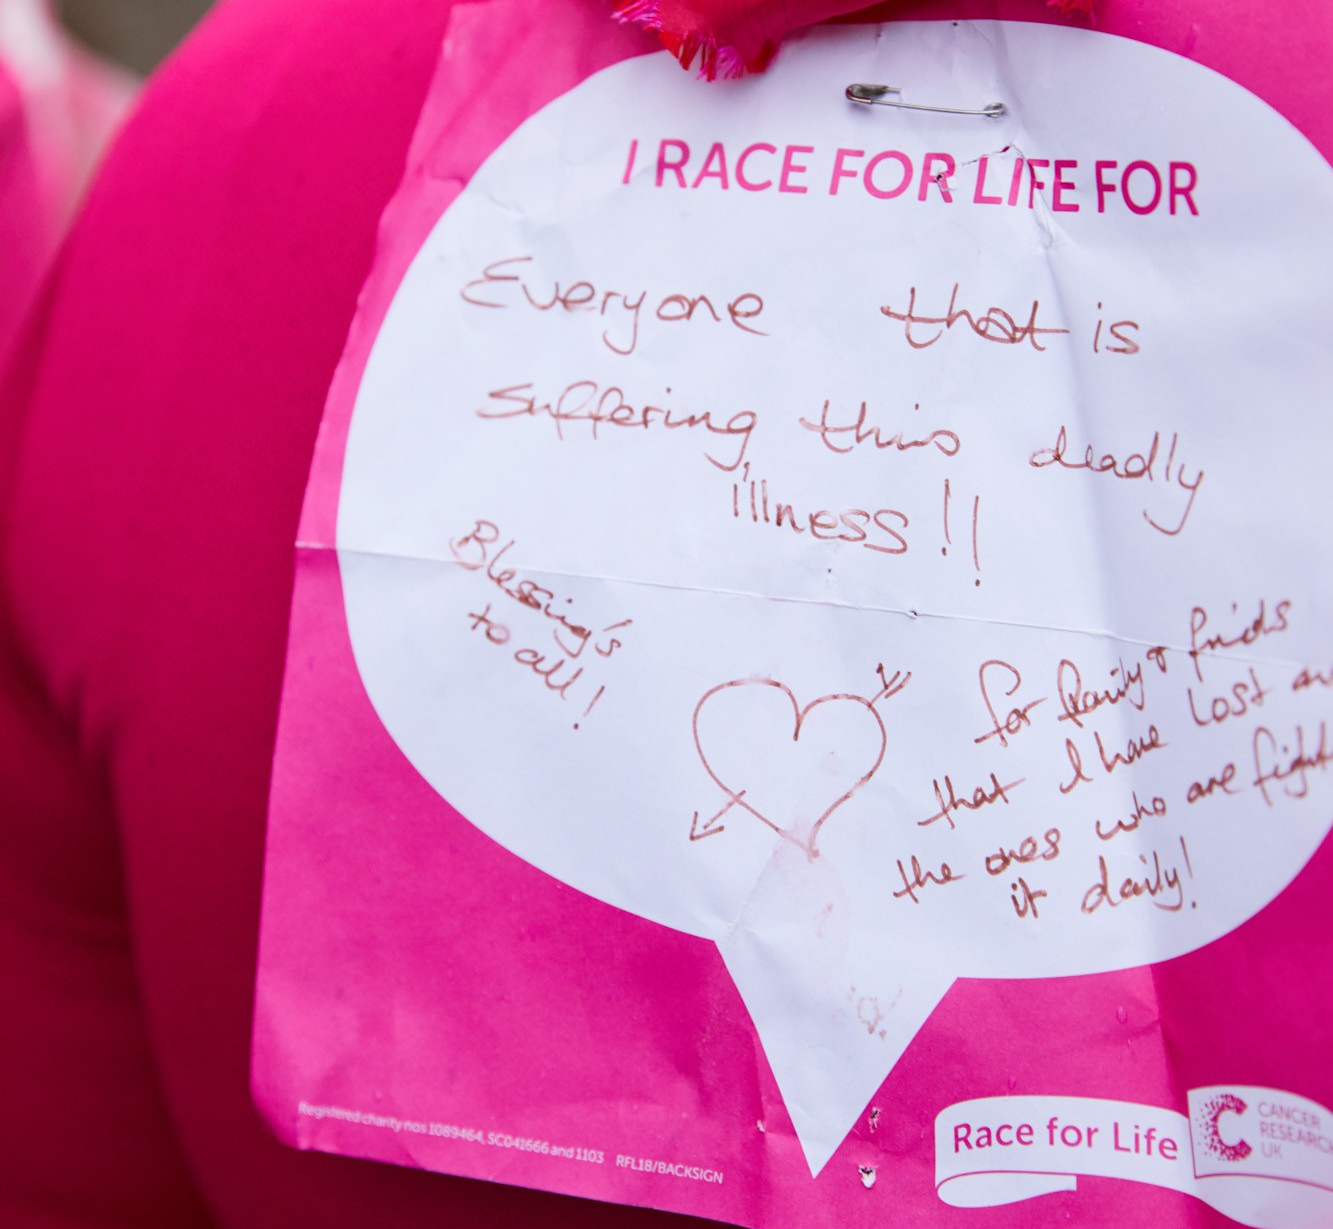 SIGNED UP YET? Race for Life – 'We don't break records we beat cancer'